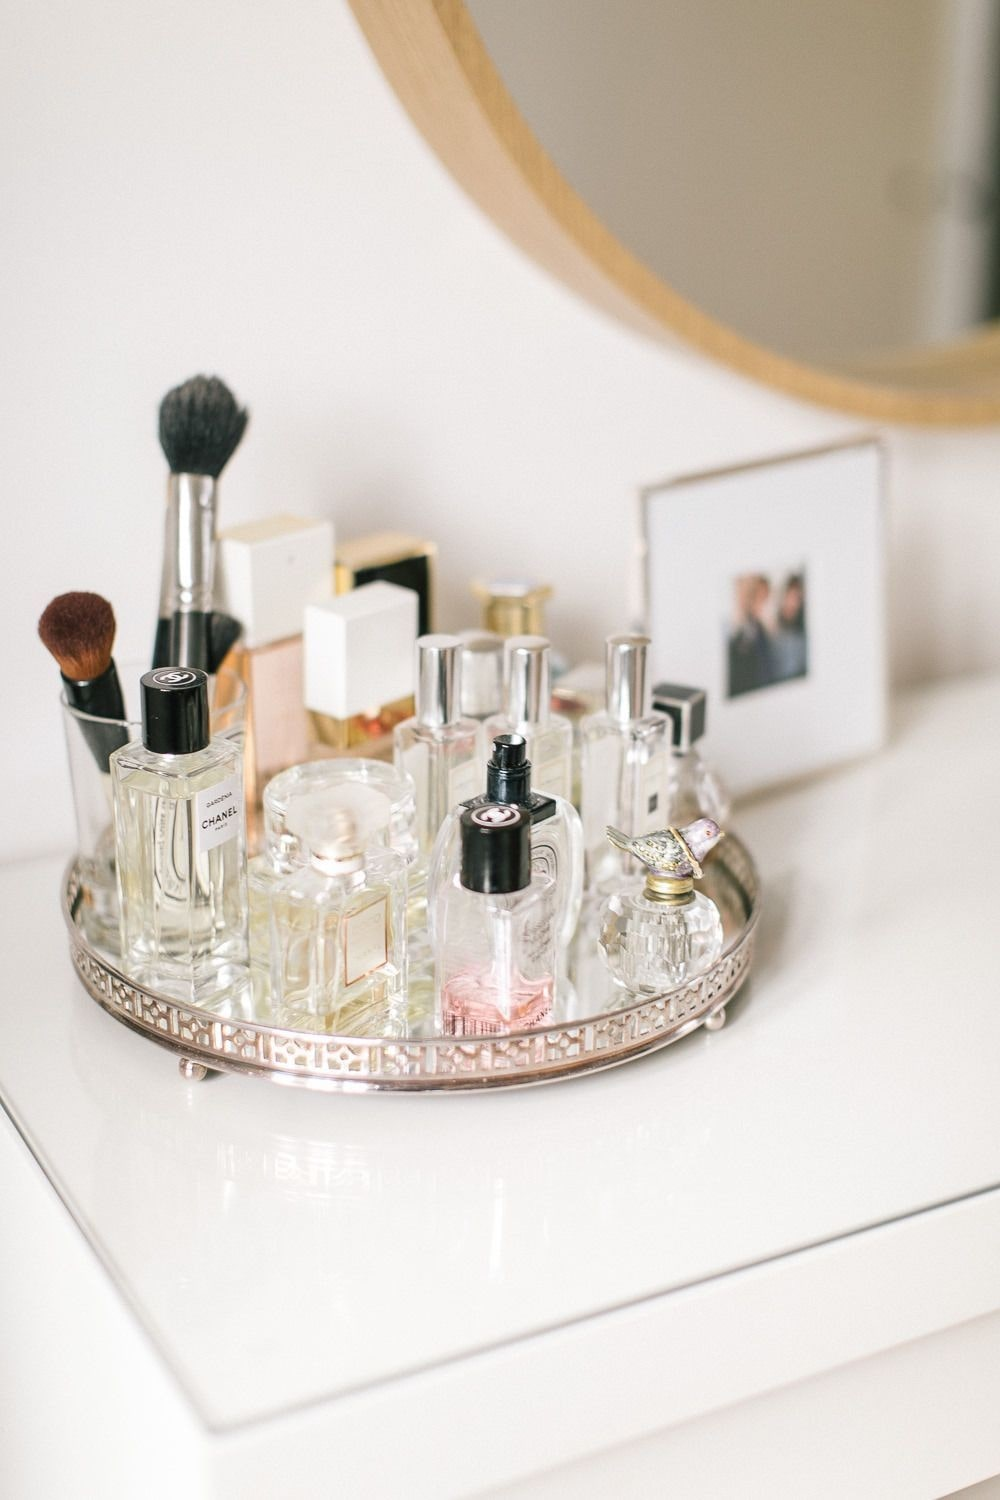 a collection of perfume bottles on a mirrored silver tray on a shiny white desk.